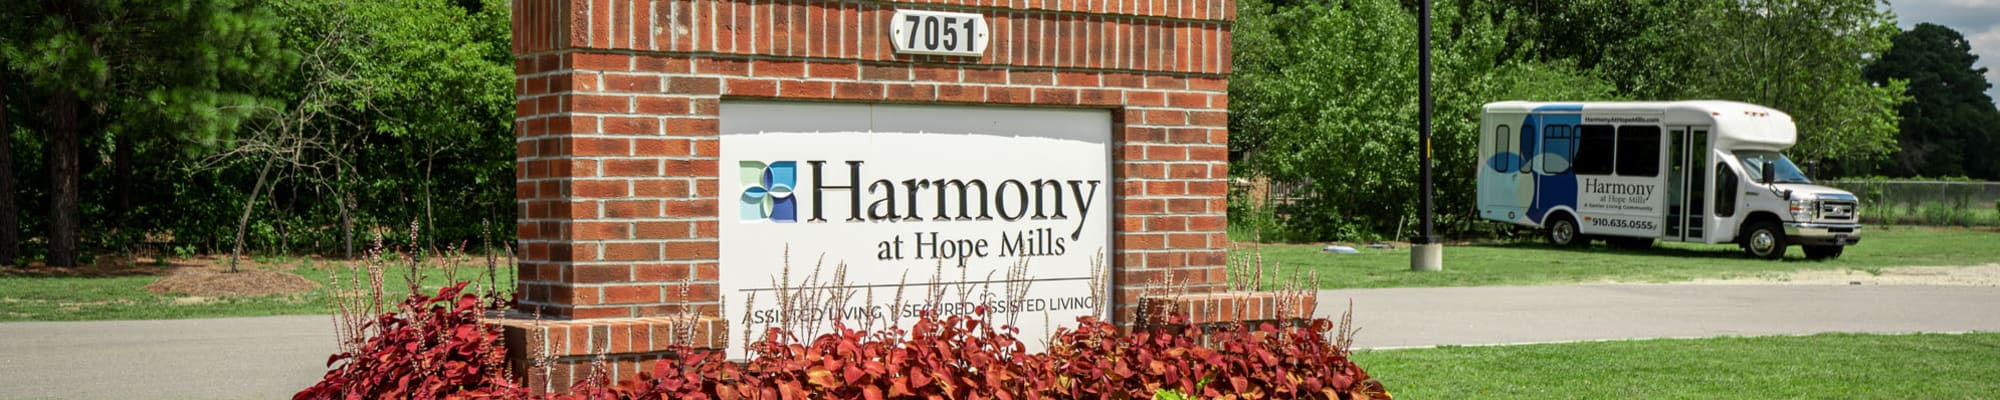 Contact Us at Harmony at Hope Mills in Fayetteville, North Carolina